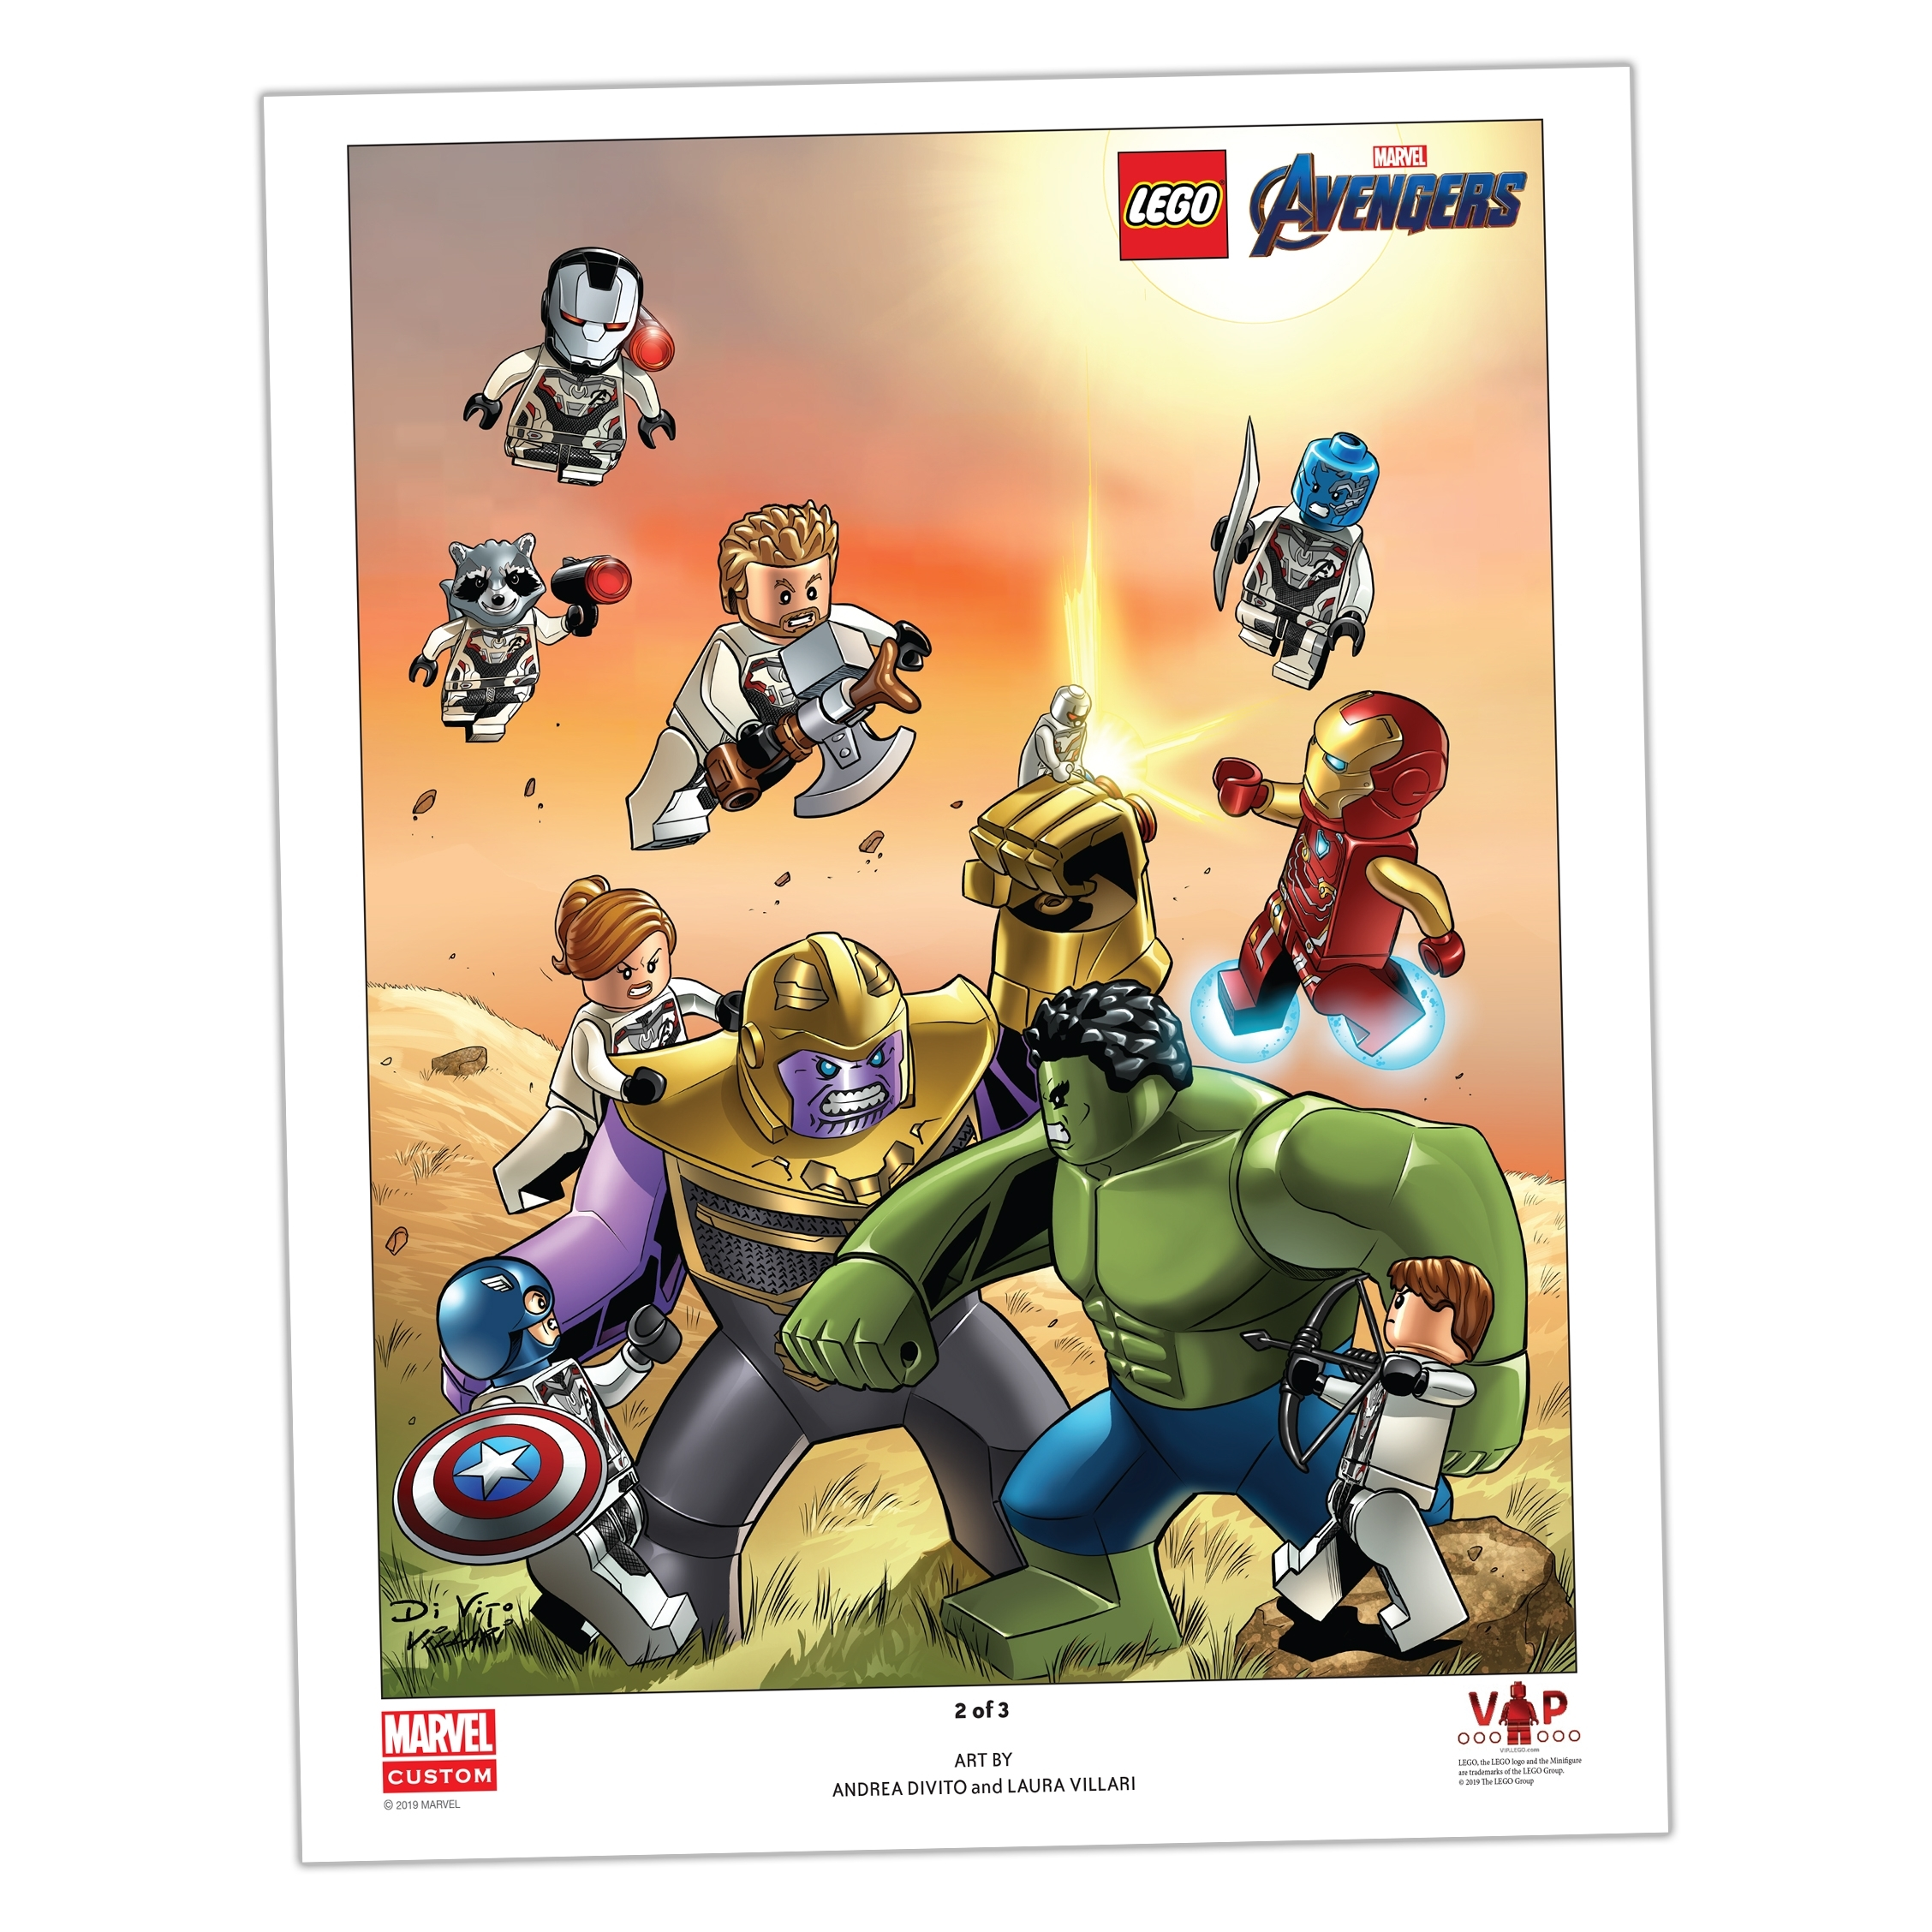 Lego Avengers Endgame Art Print 2 Of 3 5005881 Unknown Buy Online At The Official Lego Shop Us